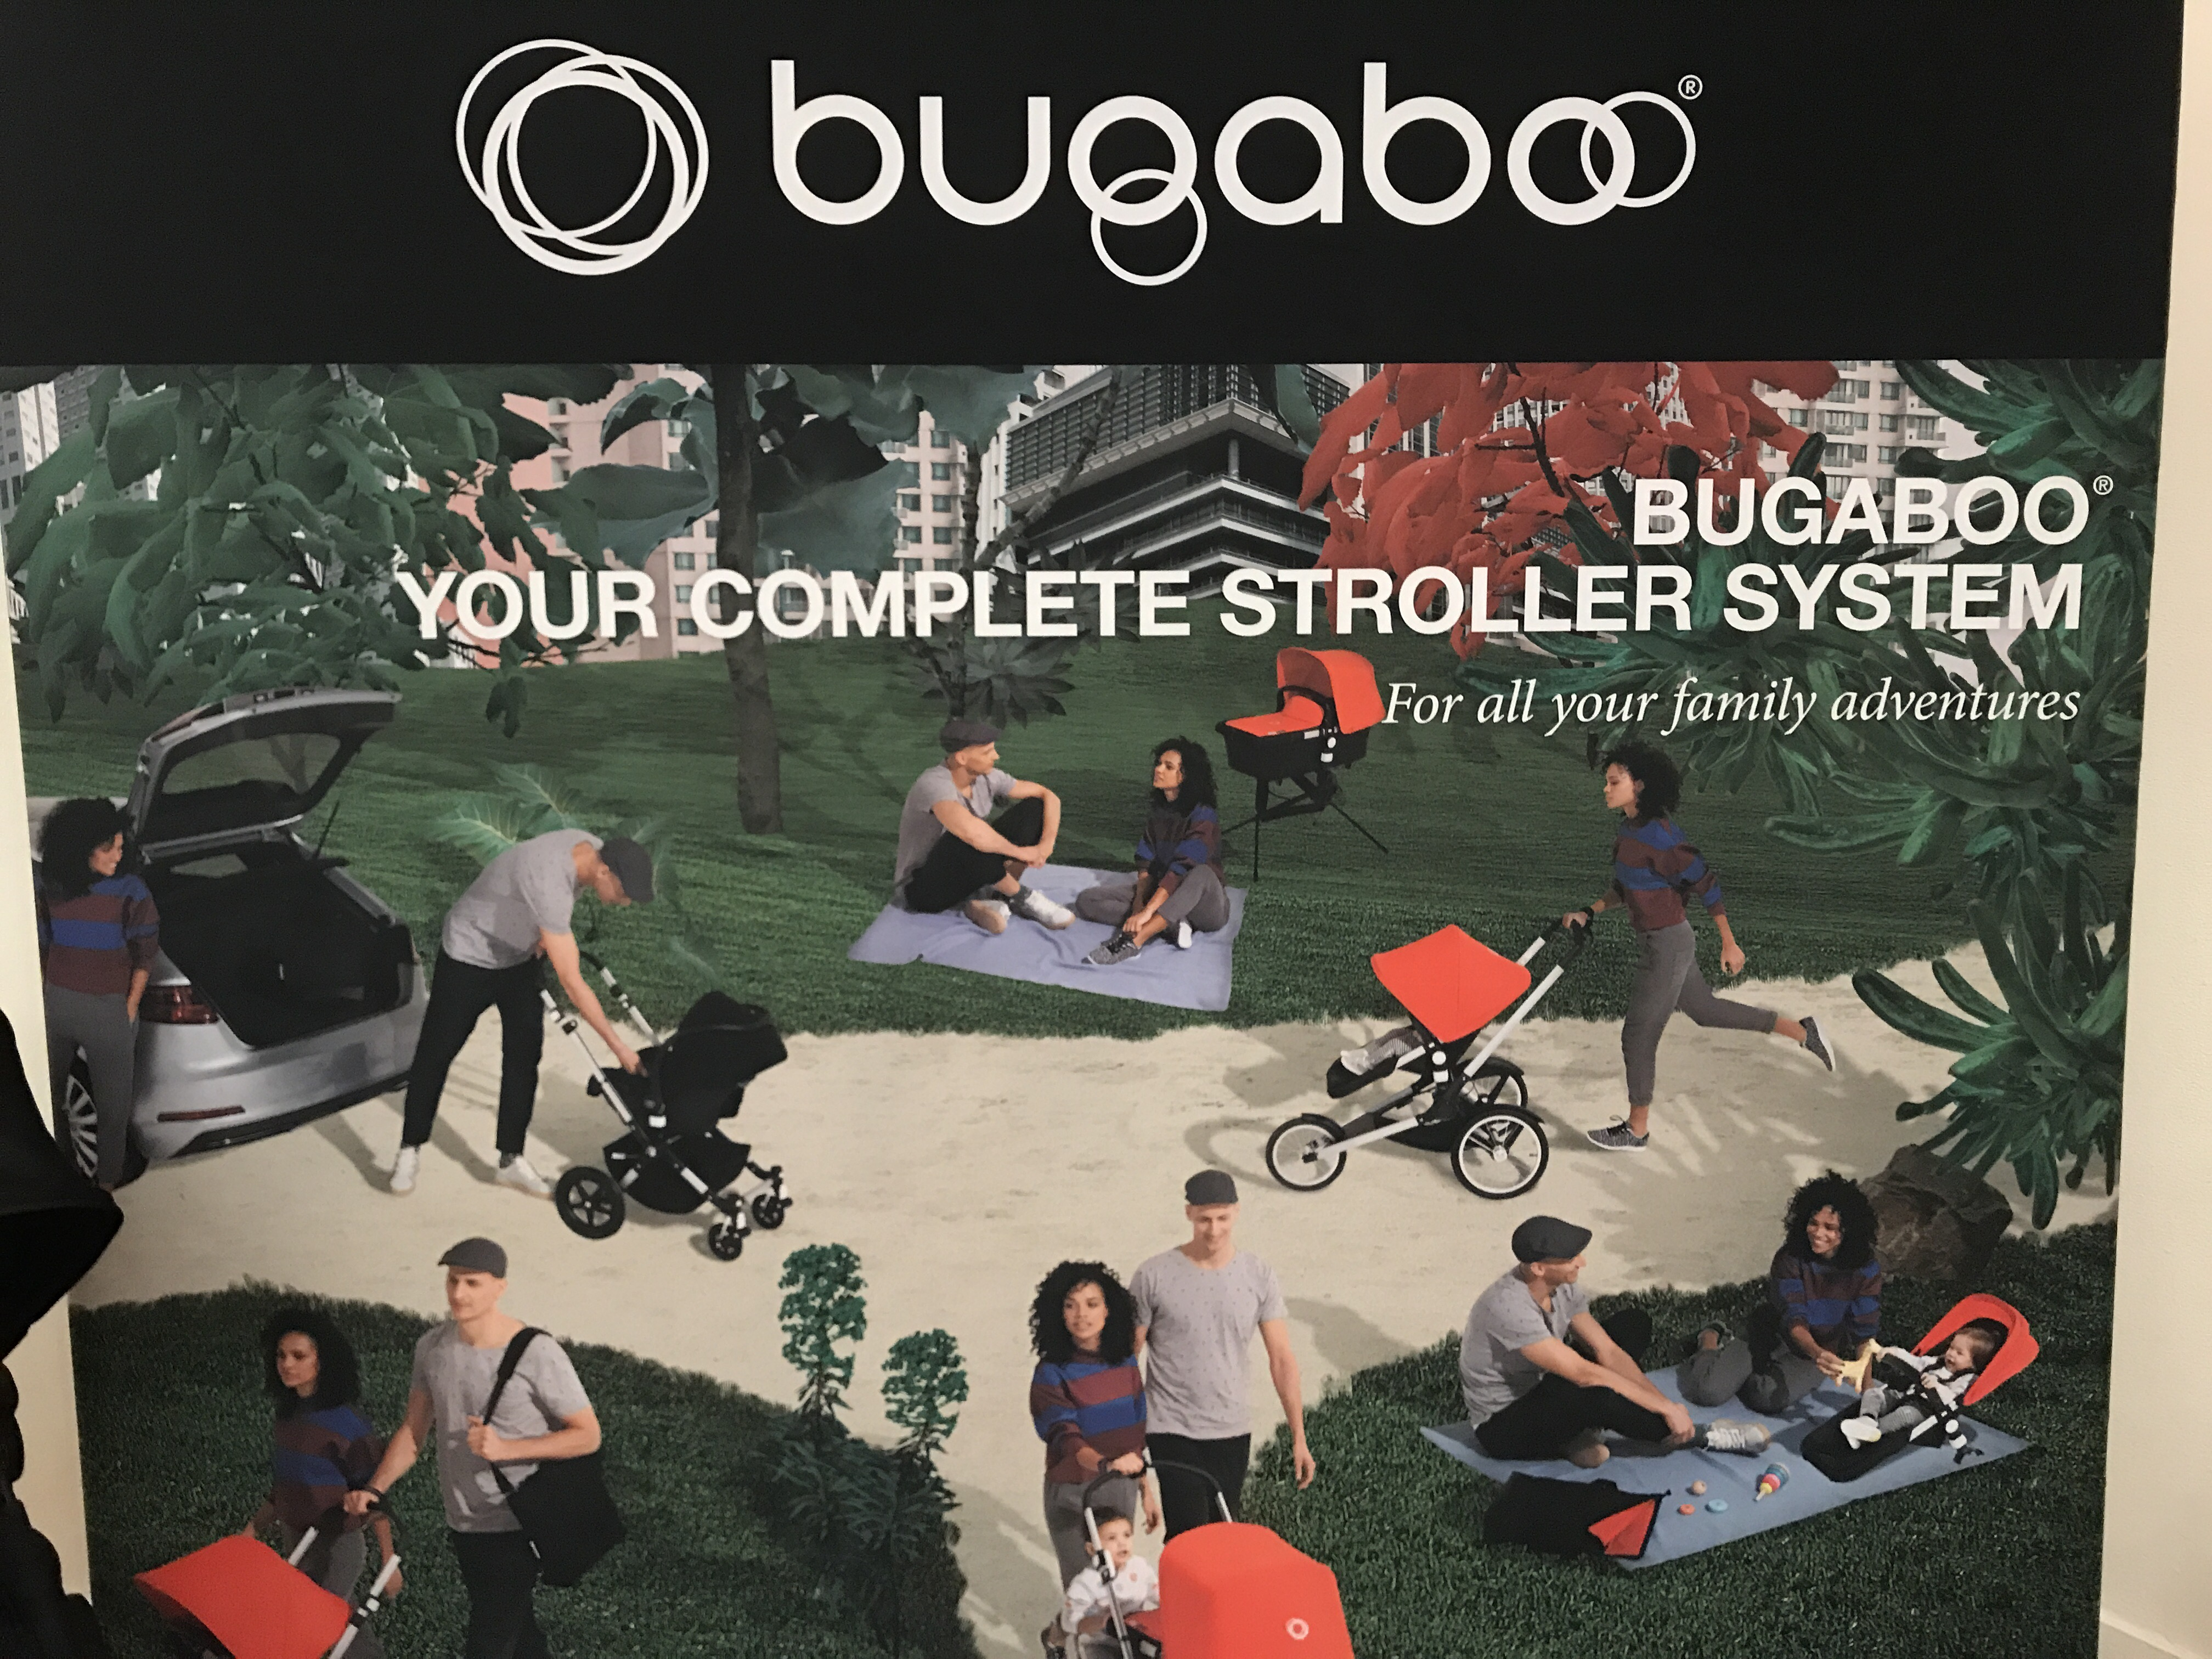 Bugaboo featured at the Big City Moms Biggest Baby Shower